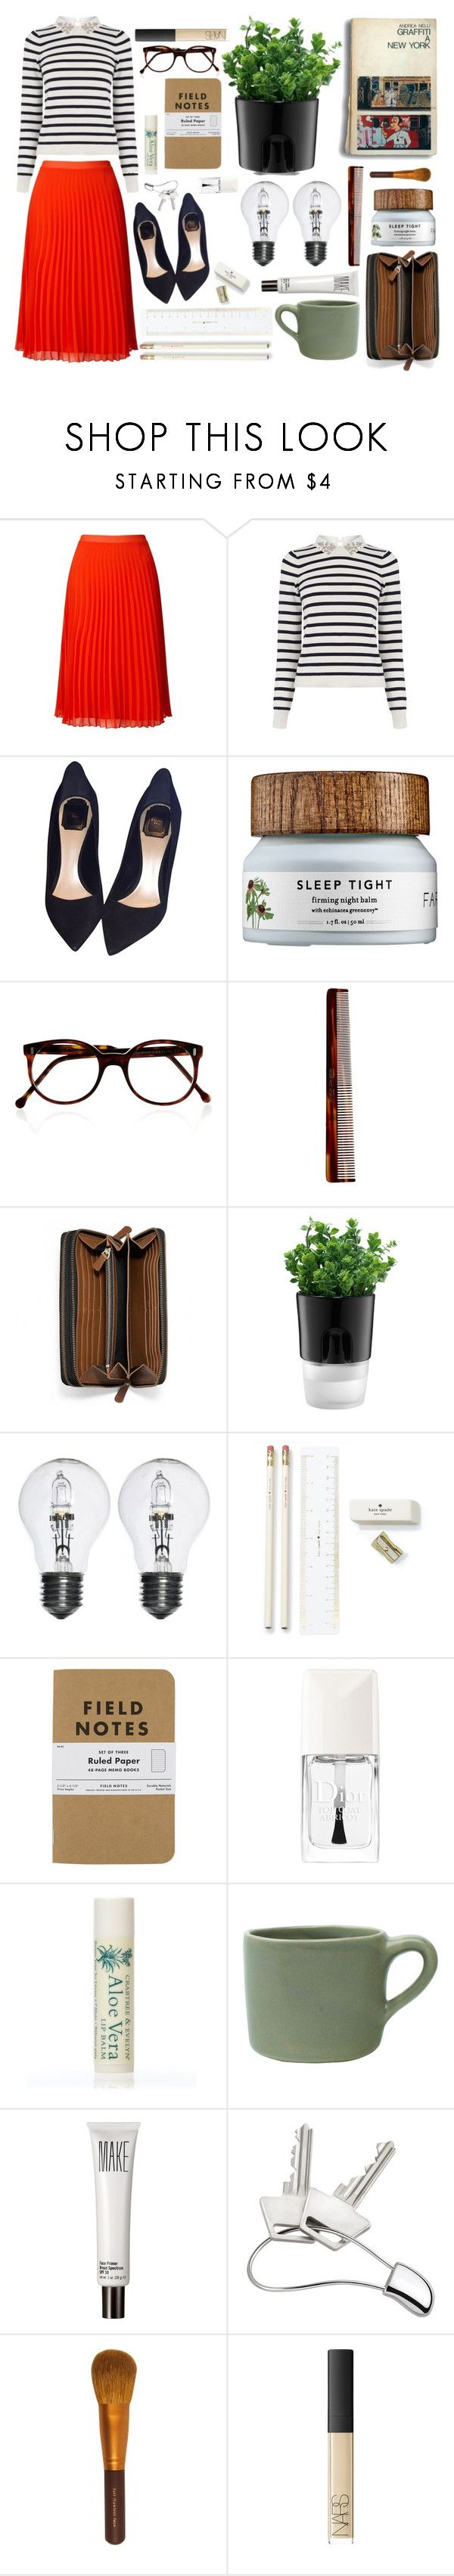 """""""Gå Med Dig"""" by freakoholic ❤ liked on Polyvore featuring Miss Selfridge, Oasis, Christian Dior, Cutler and Gross, Mason Pearson, Coach, Bodum, Kate Spade, Alöe and canvas"""